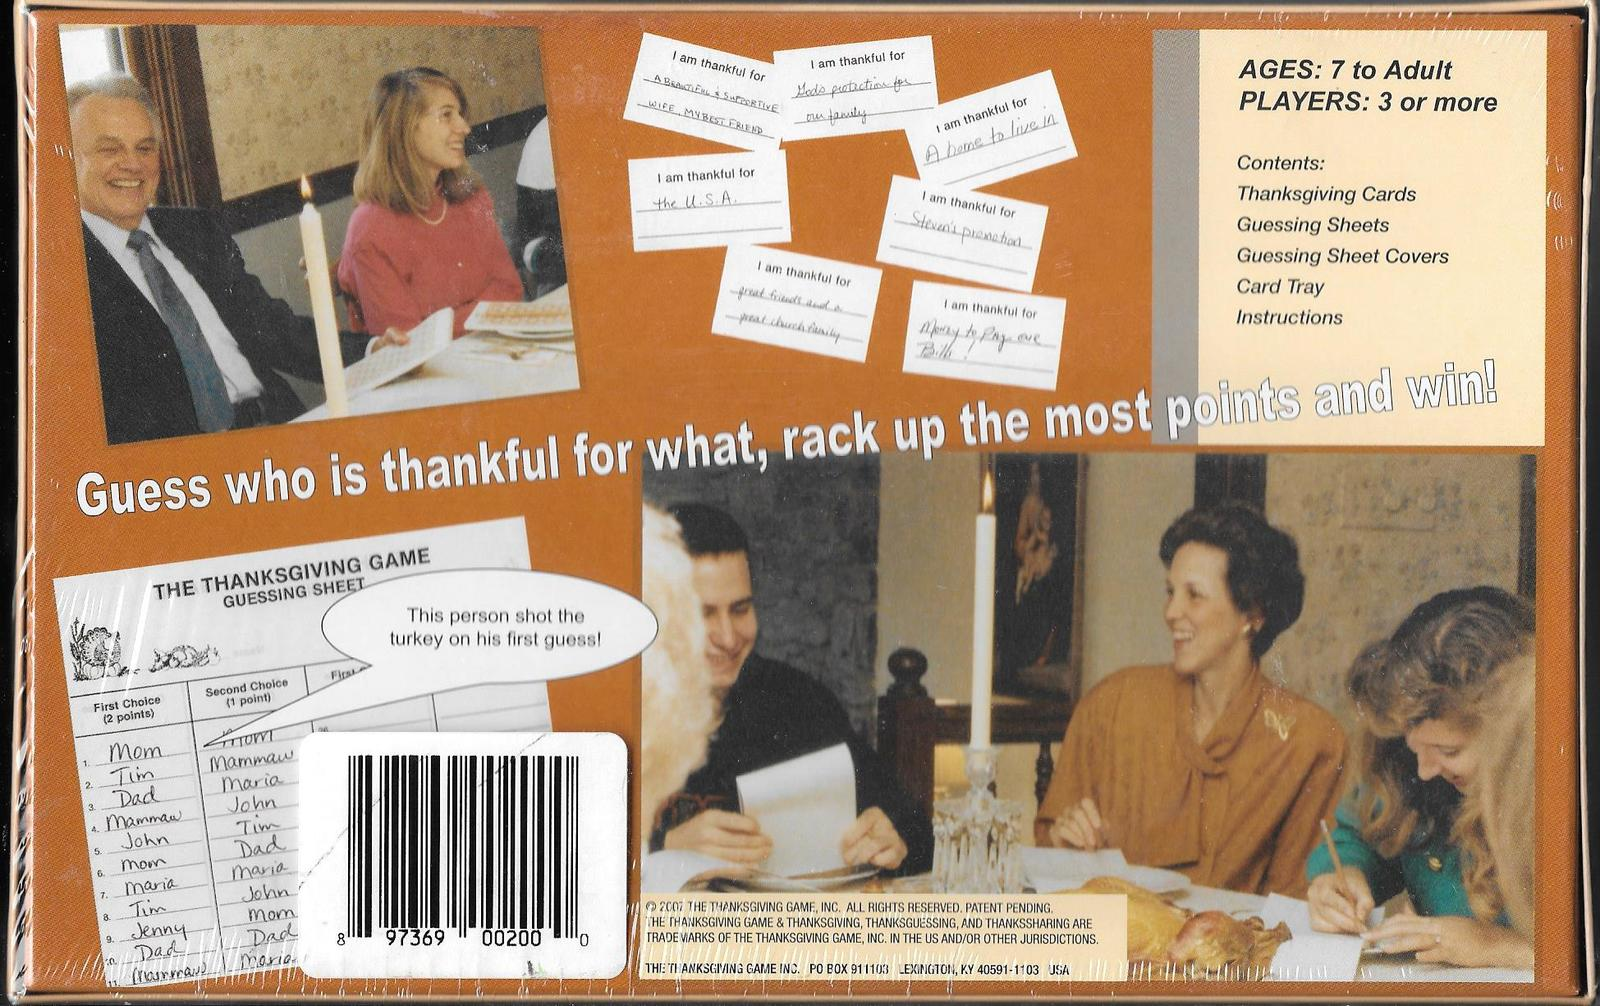 Thanksgiving guessing Game 2007 cards family party entertainment child adult  H7